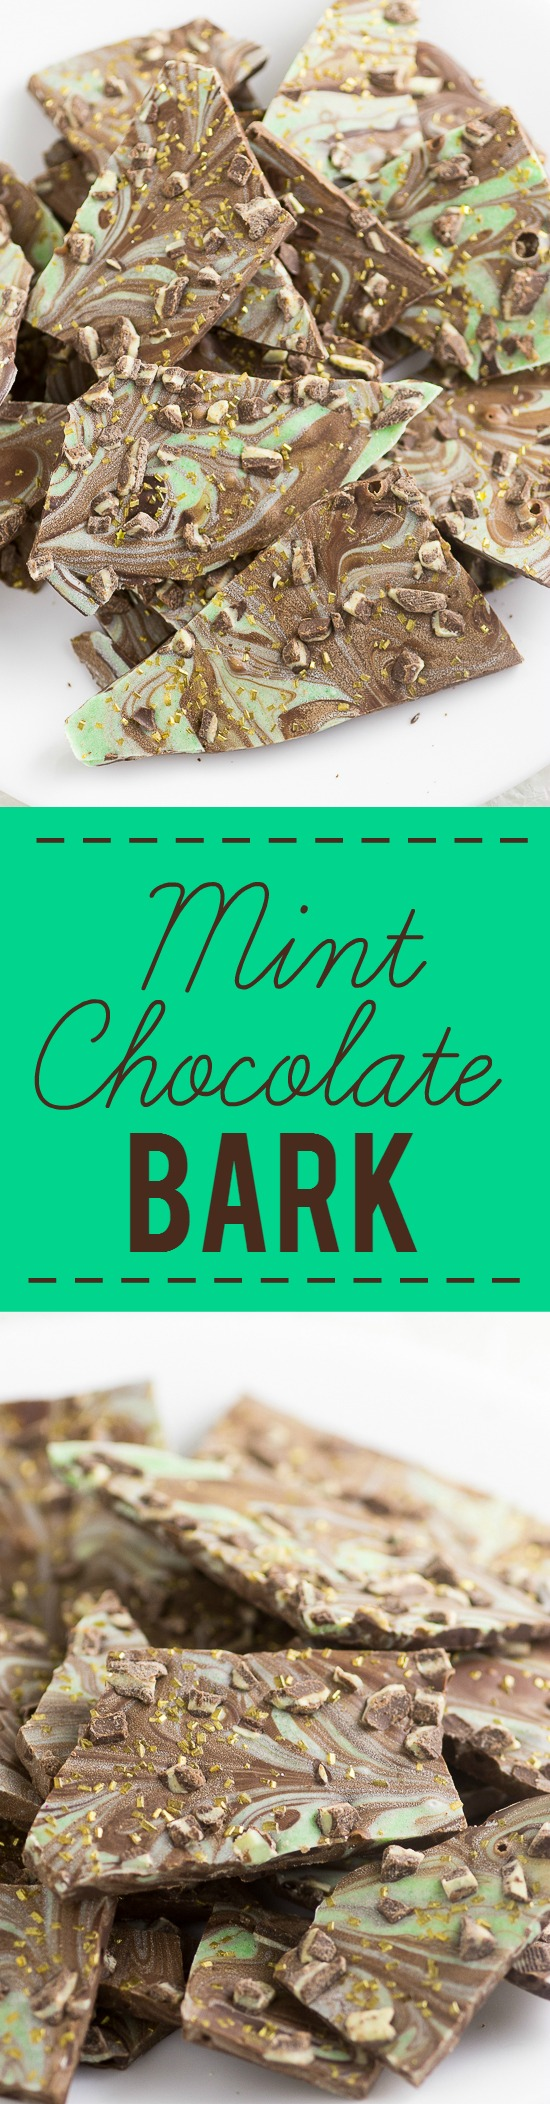 Mint Chocolate Bark Recipe -Easy Mint Chocolate Bark recipe with smooth, rich chocolate swirled with mint flavored white chocolate makes a quick, easy, and decadent dessert. YES! Love mint chocolate. This would be perfect for Christmas or St Patrick's Day.